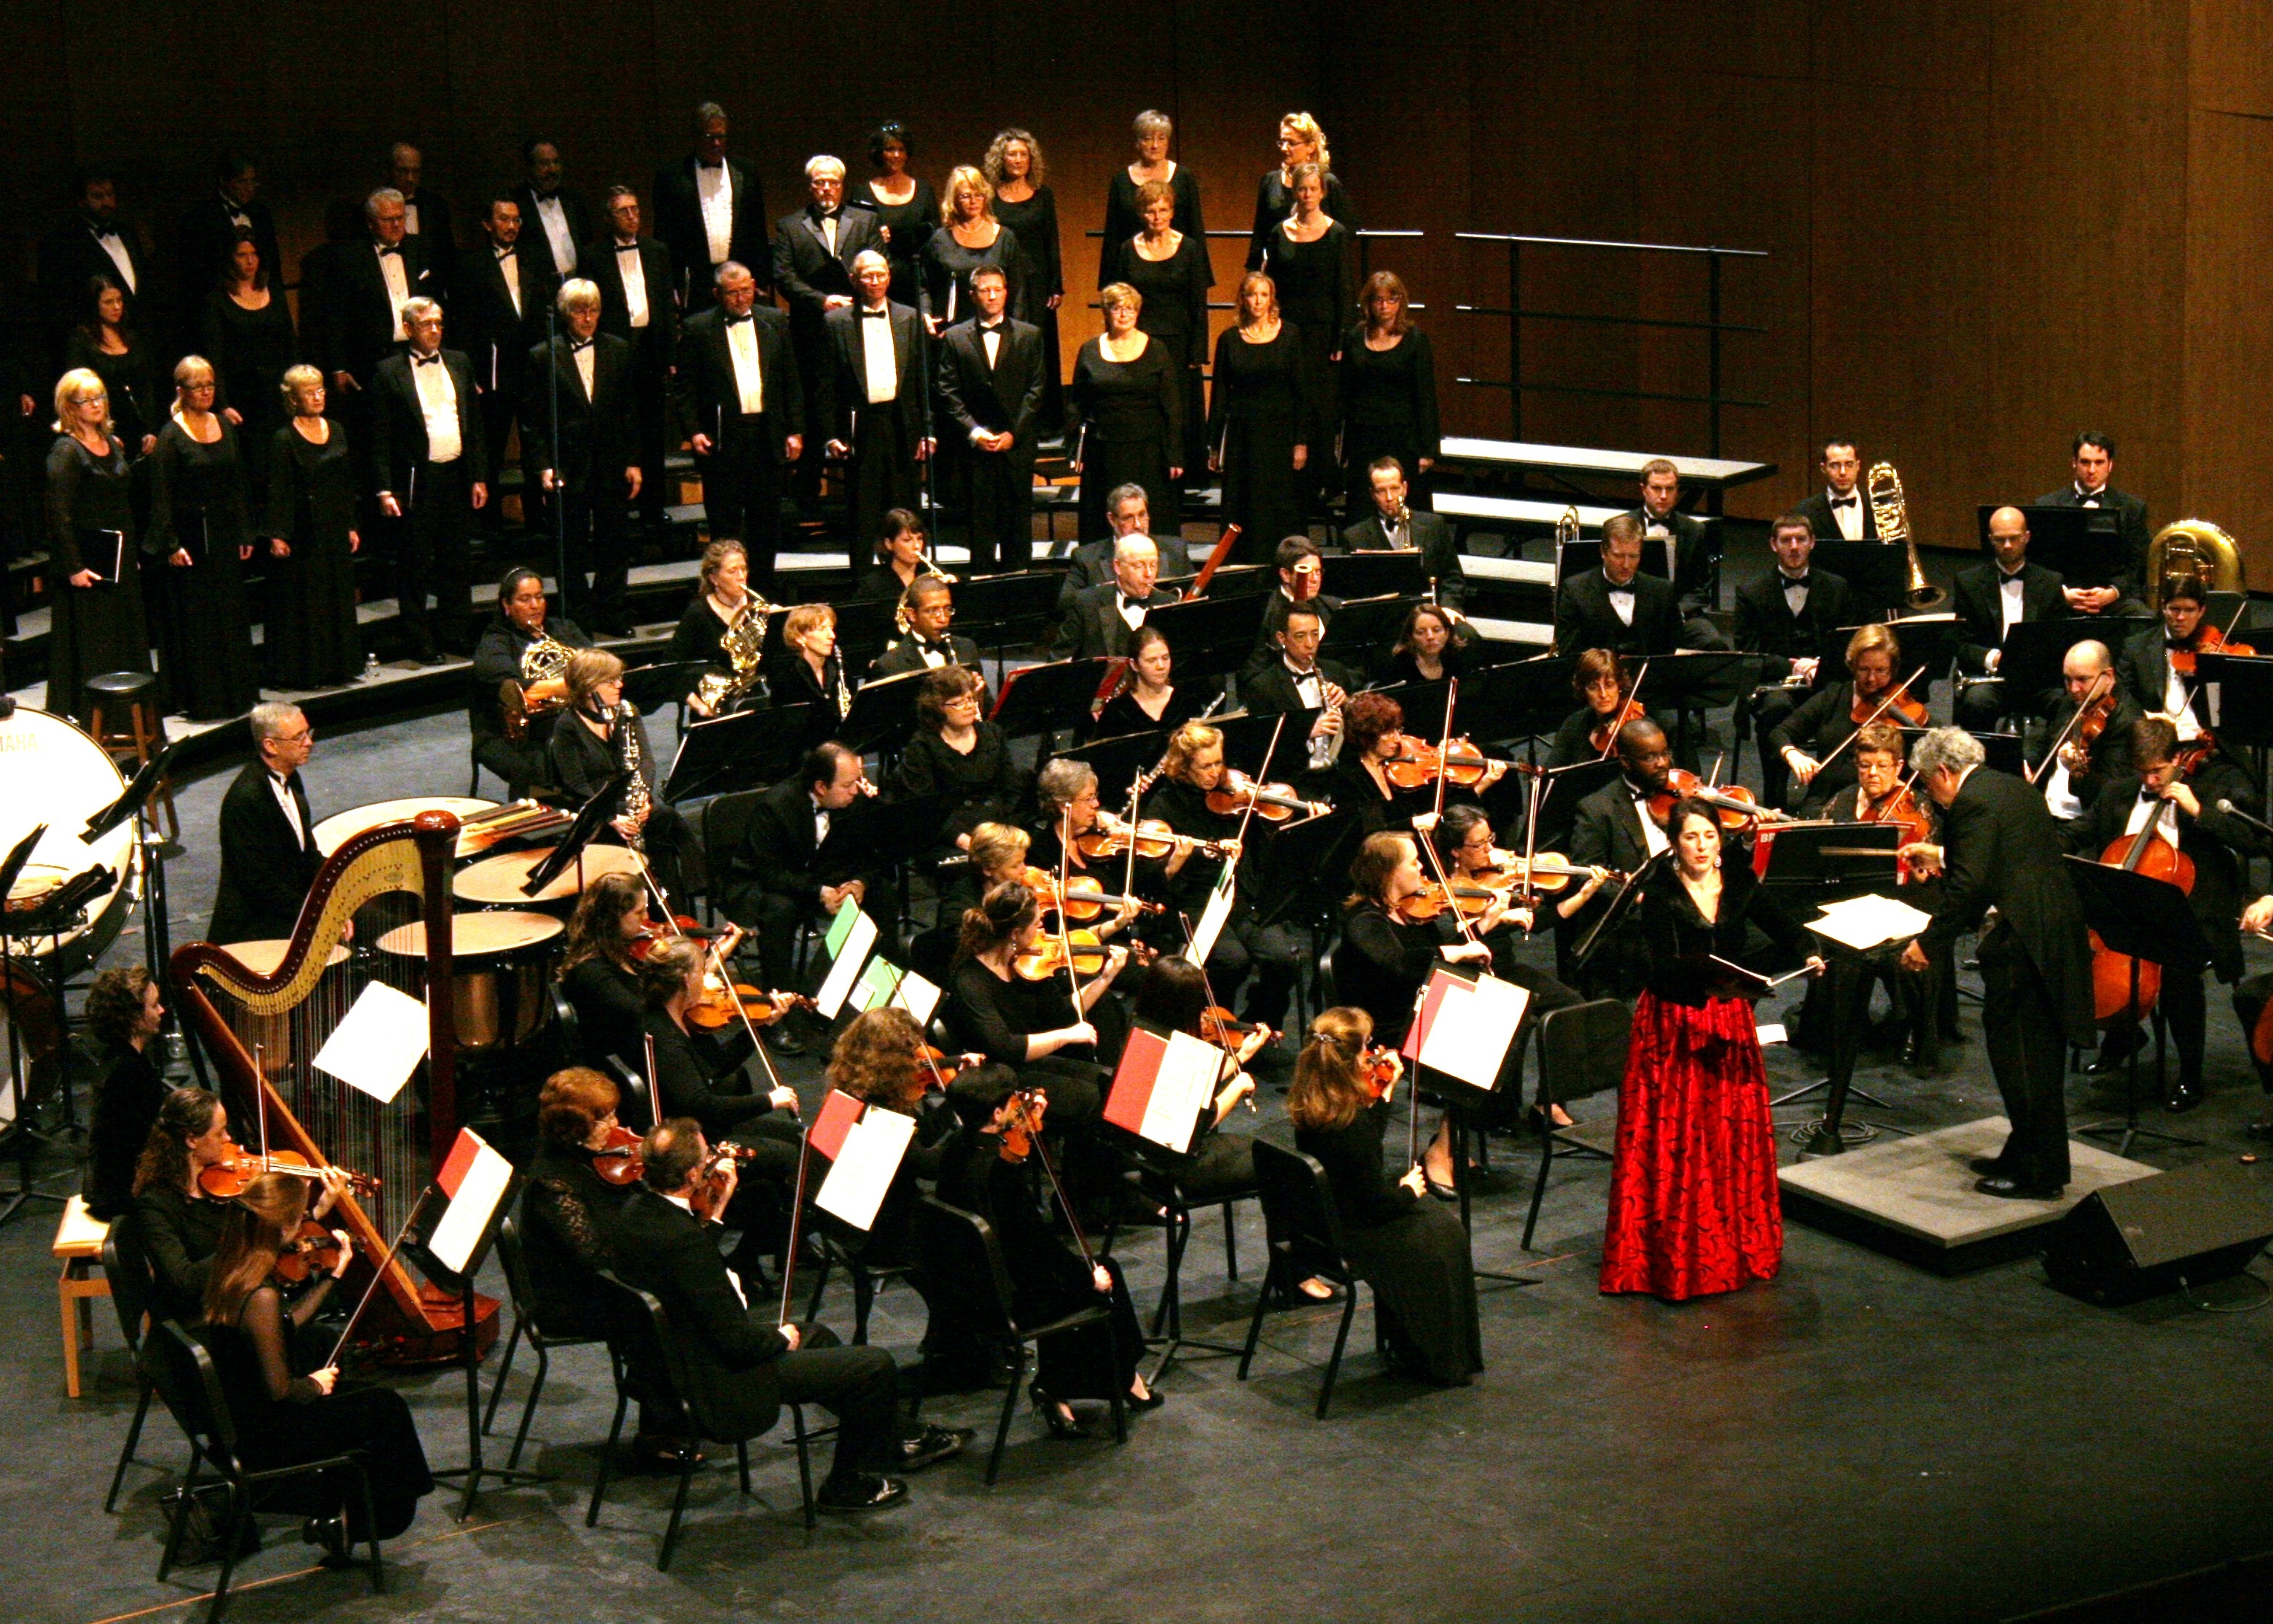 One of the best kept musical secrets in this area, the Allen Philharmonic Orchestra and Symphony Chorus offer a season full of concerts featuring famous guest artists, holiday traditions and cultural connections.